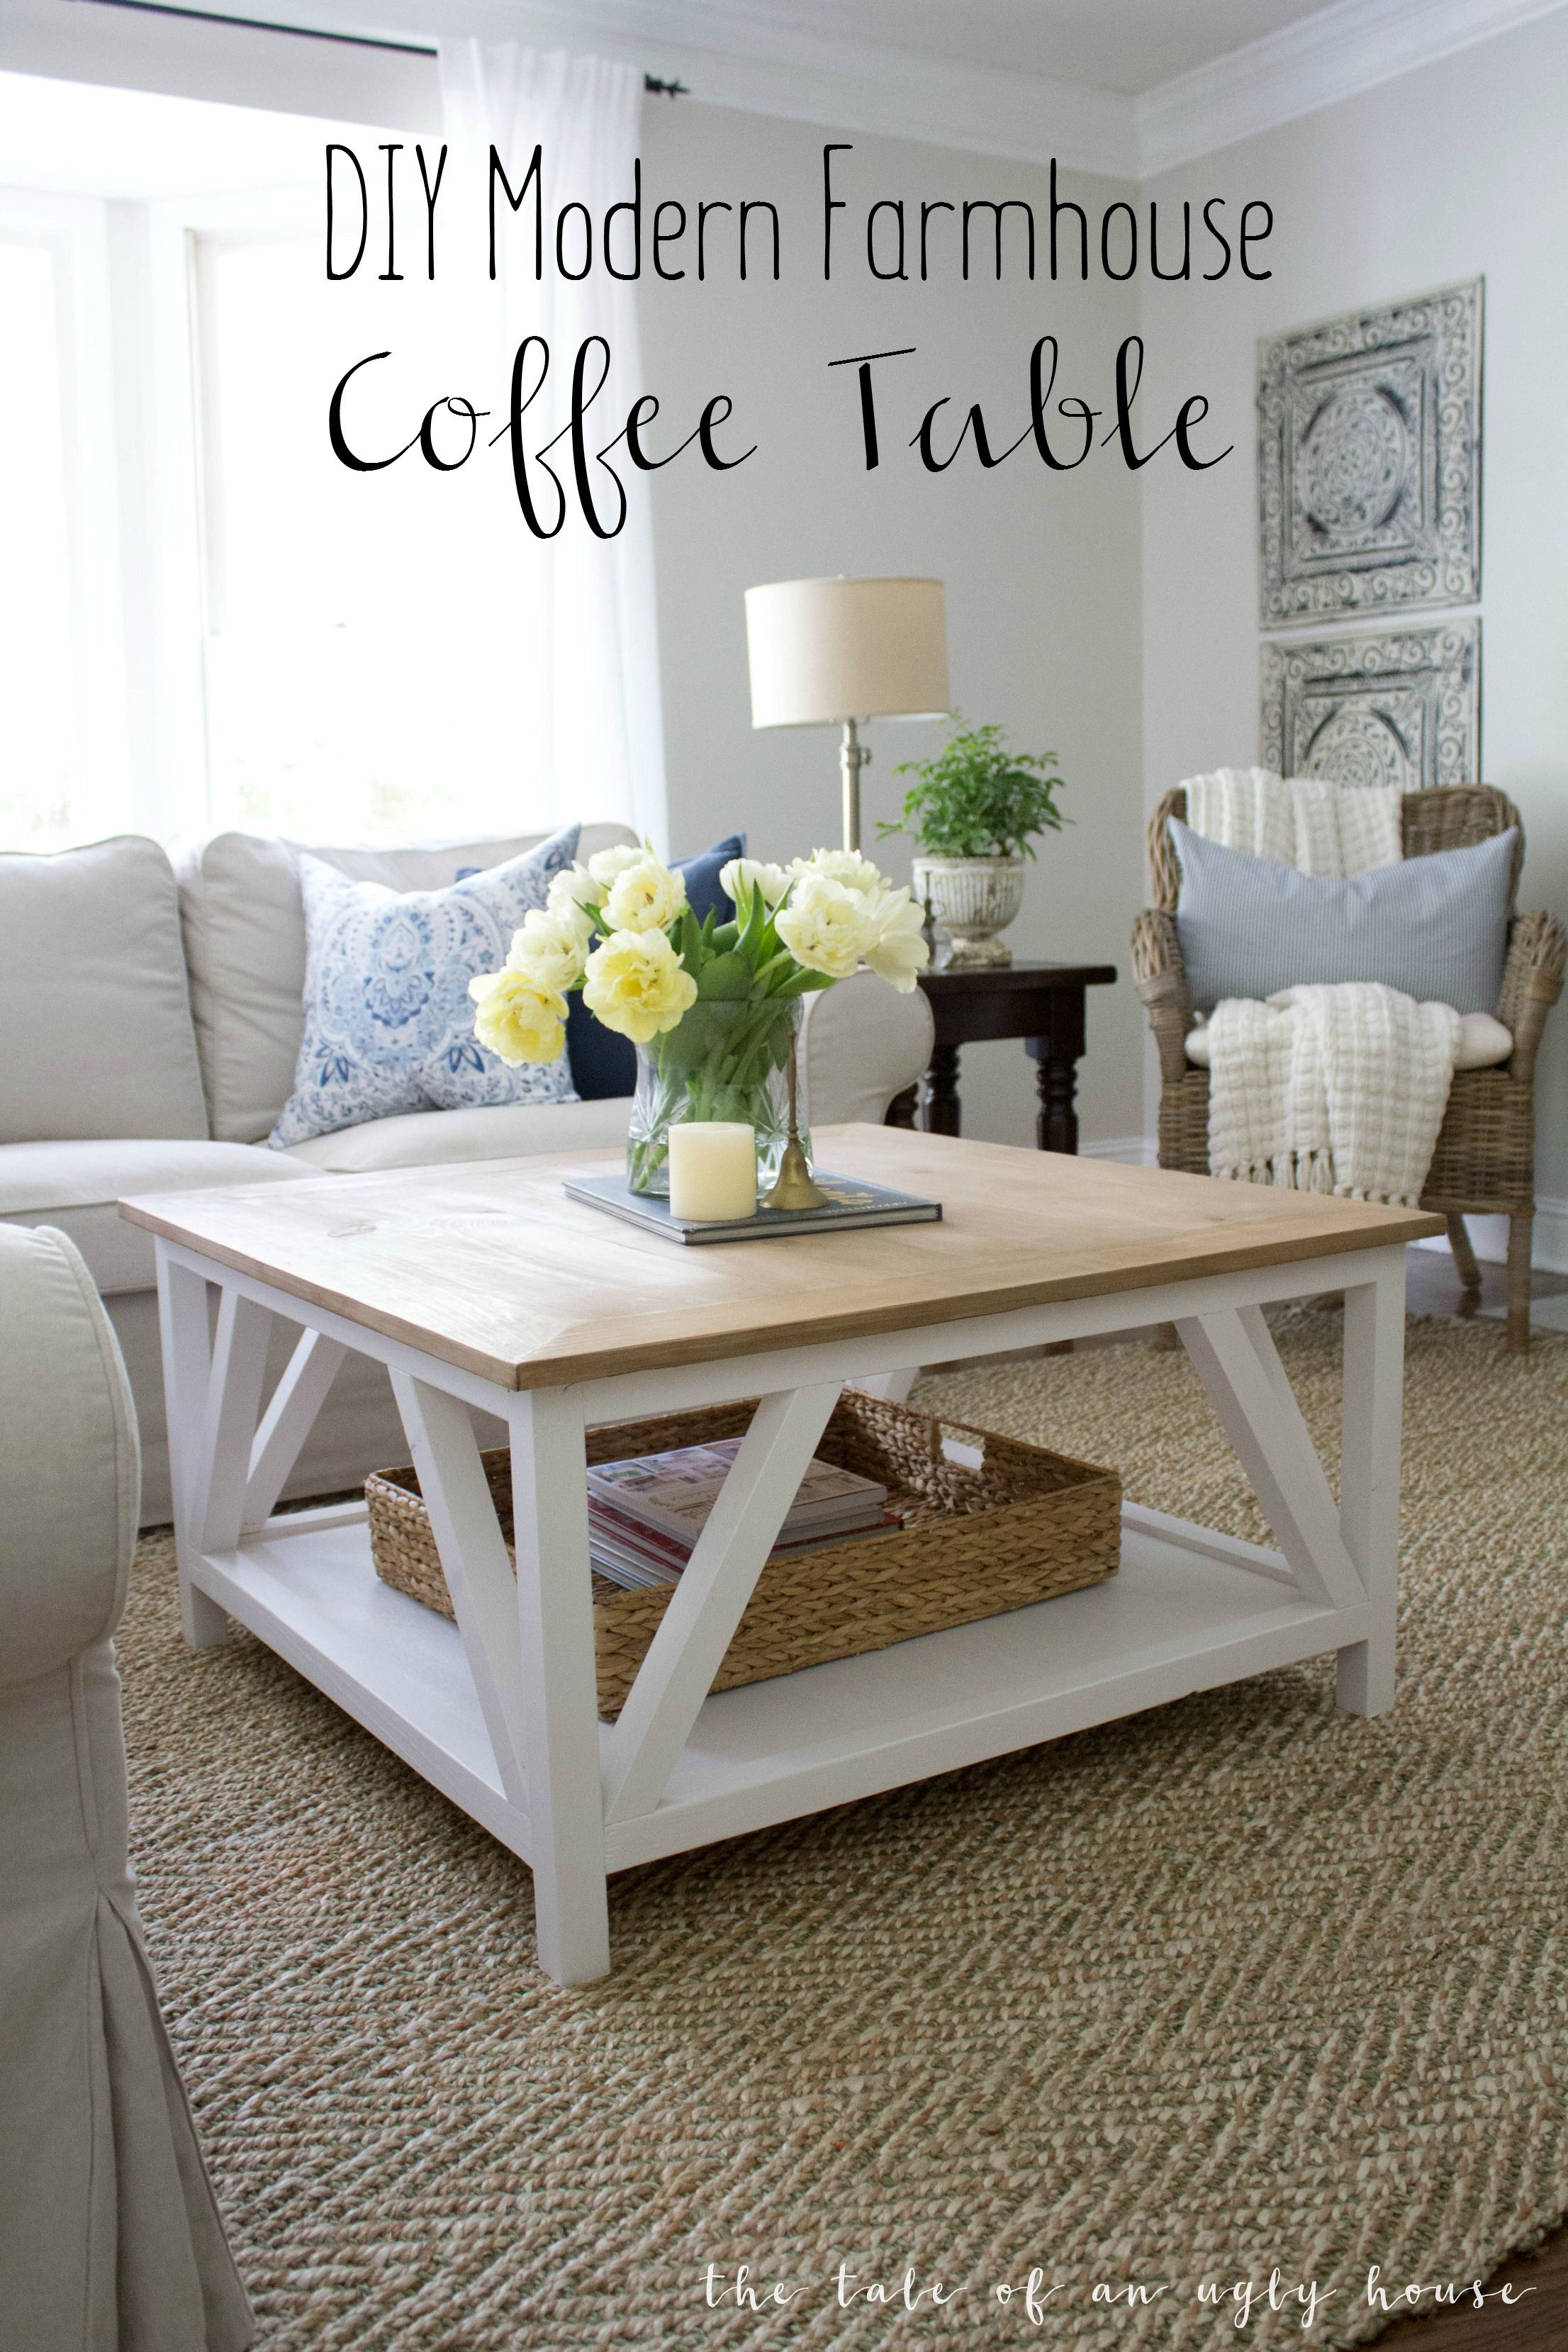 how to build a diy modern farmhouse coffee table classic